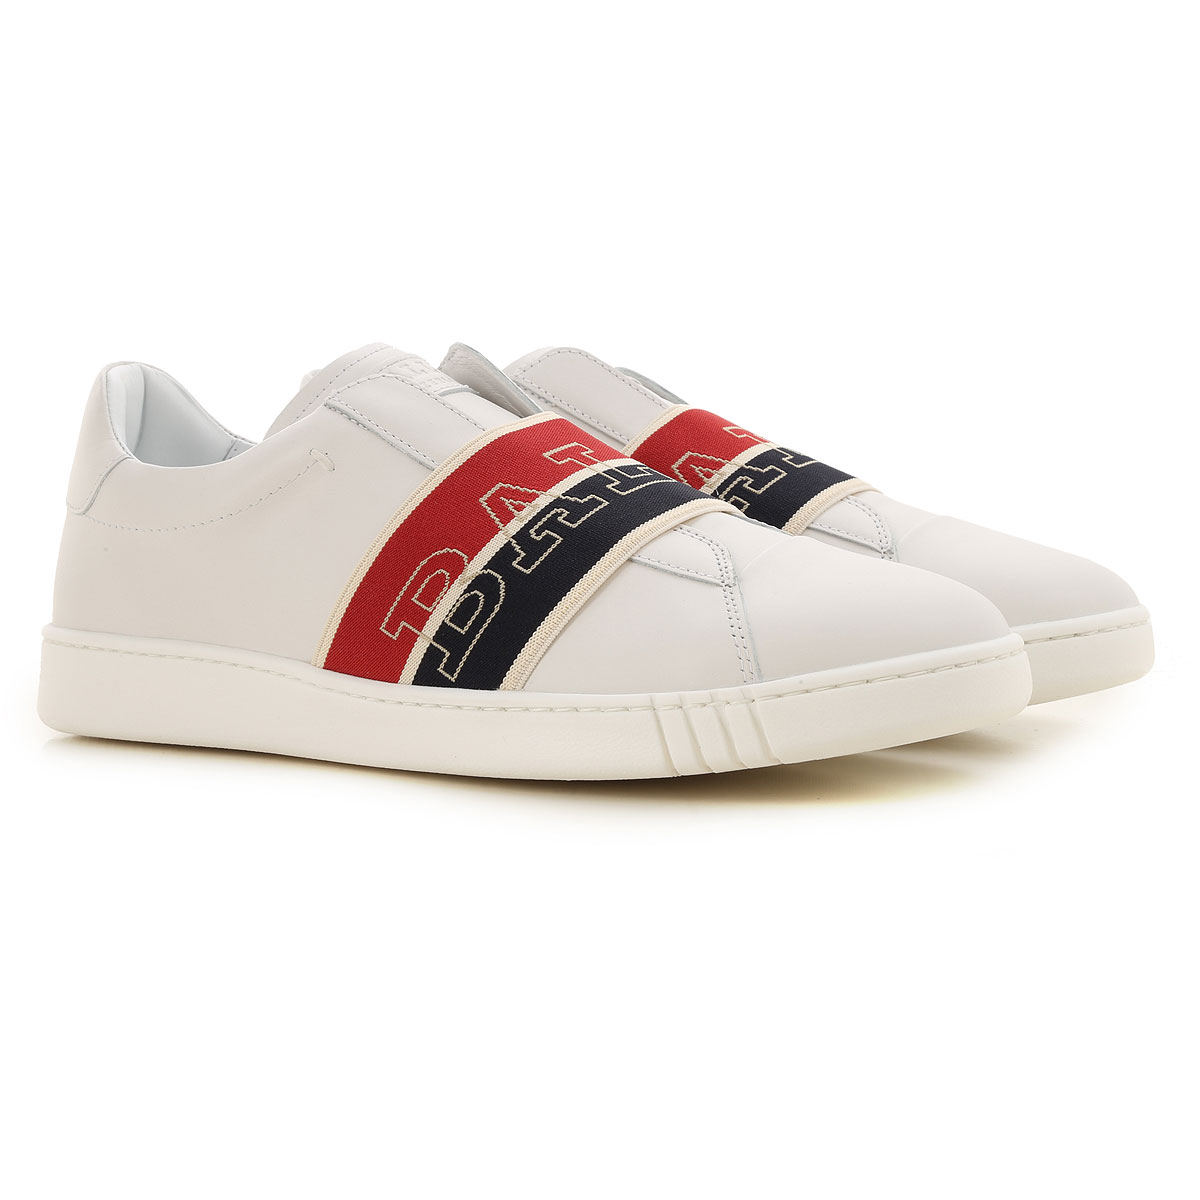 Bally Sneakers for Women On Sale, White, Leather, 2019, 5 6 7 9